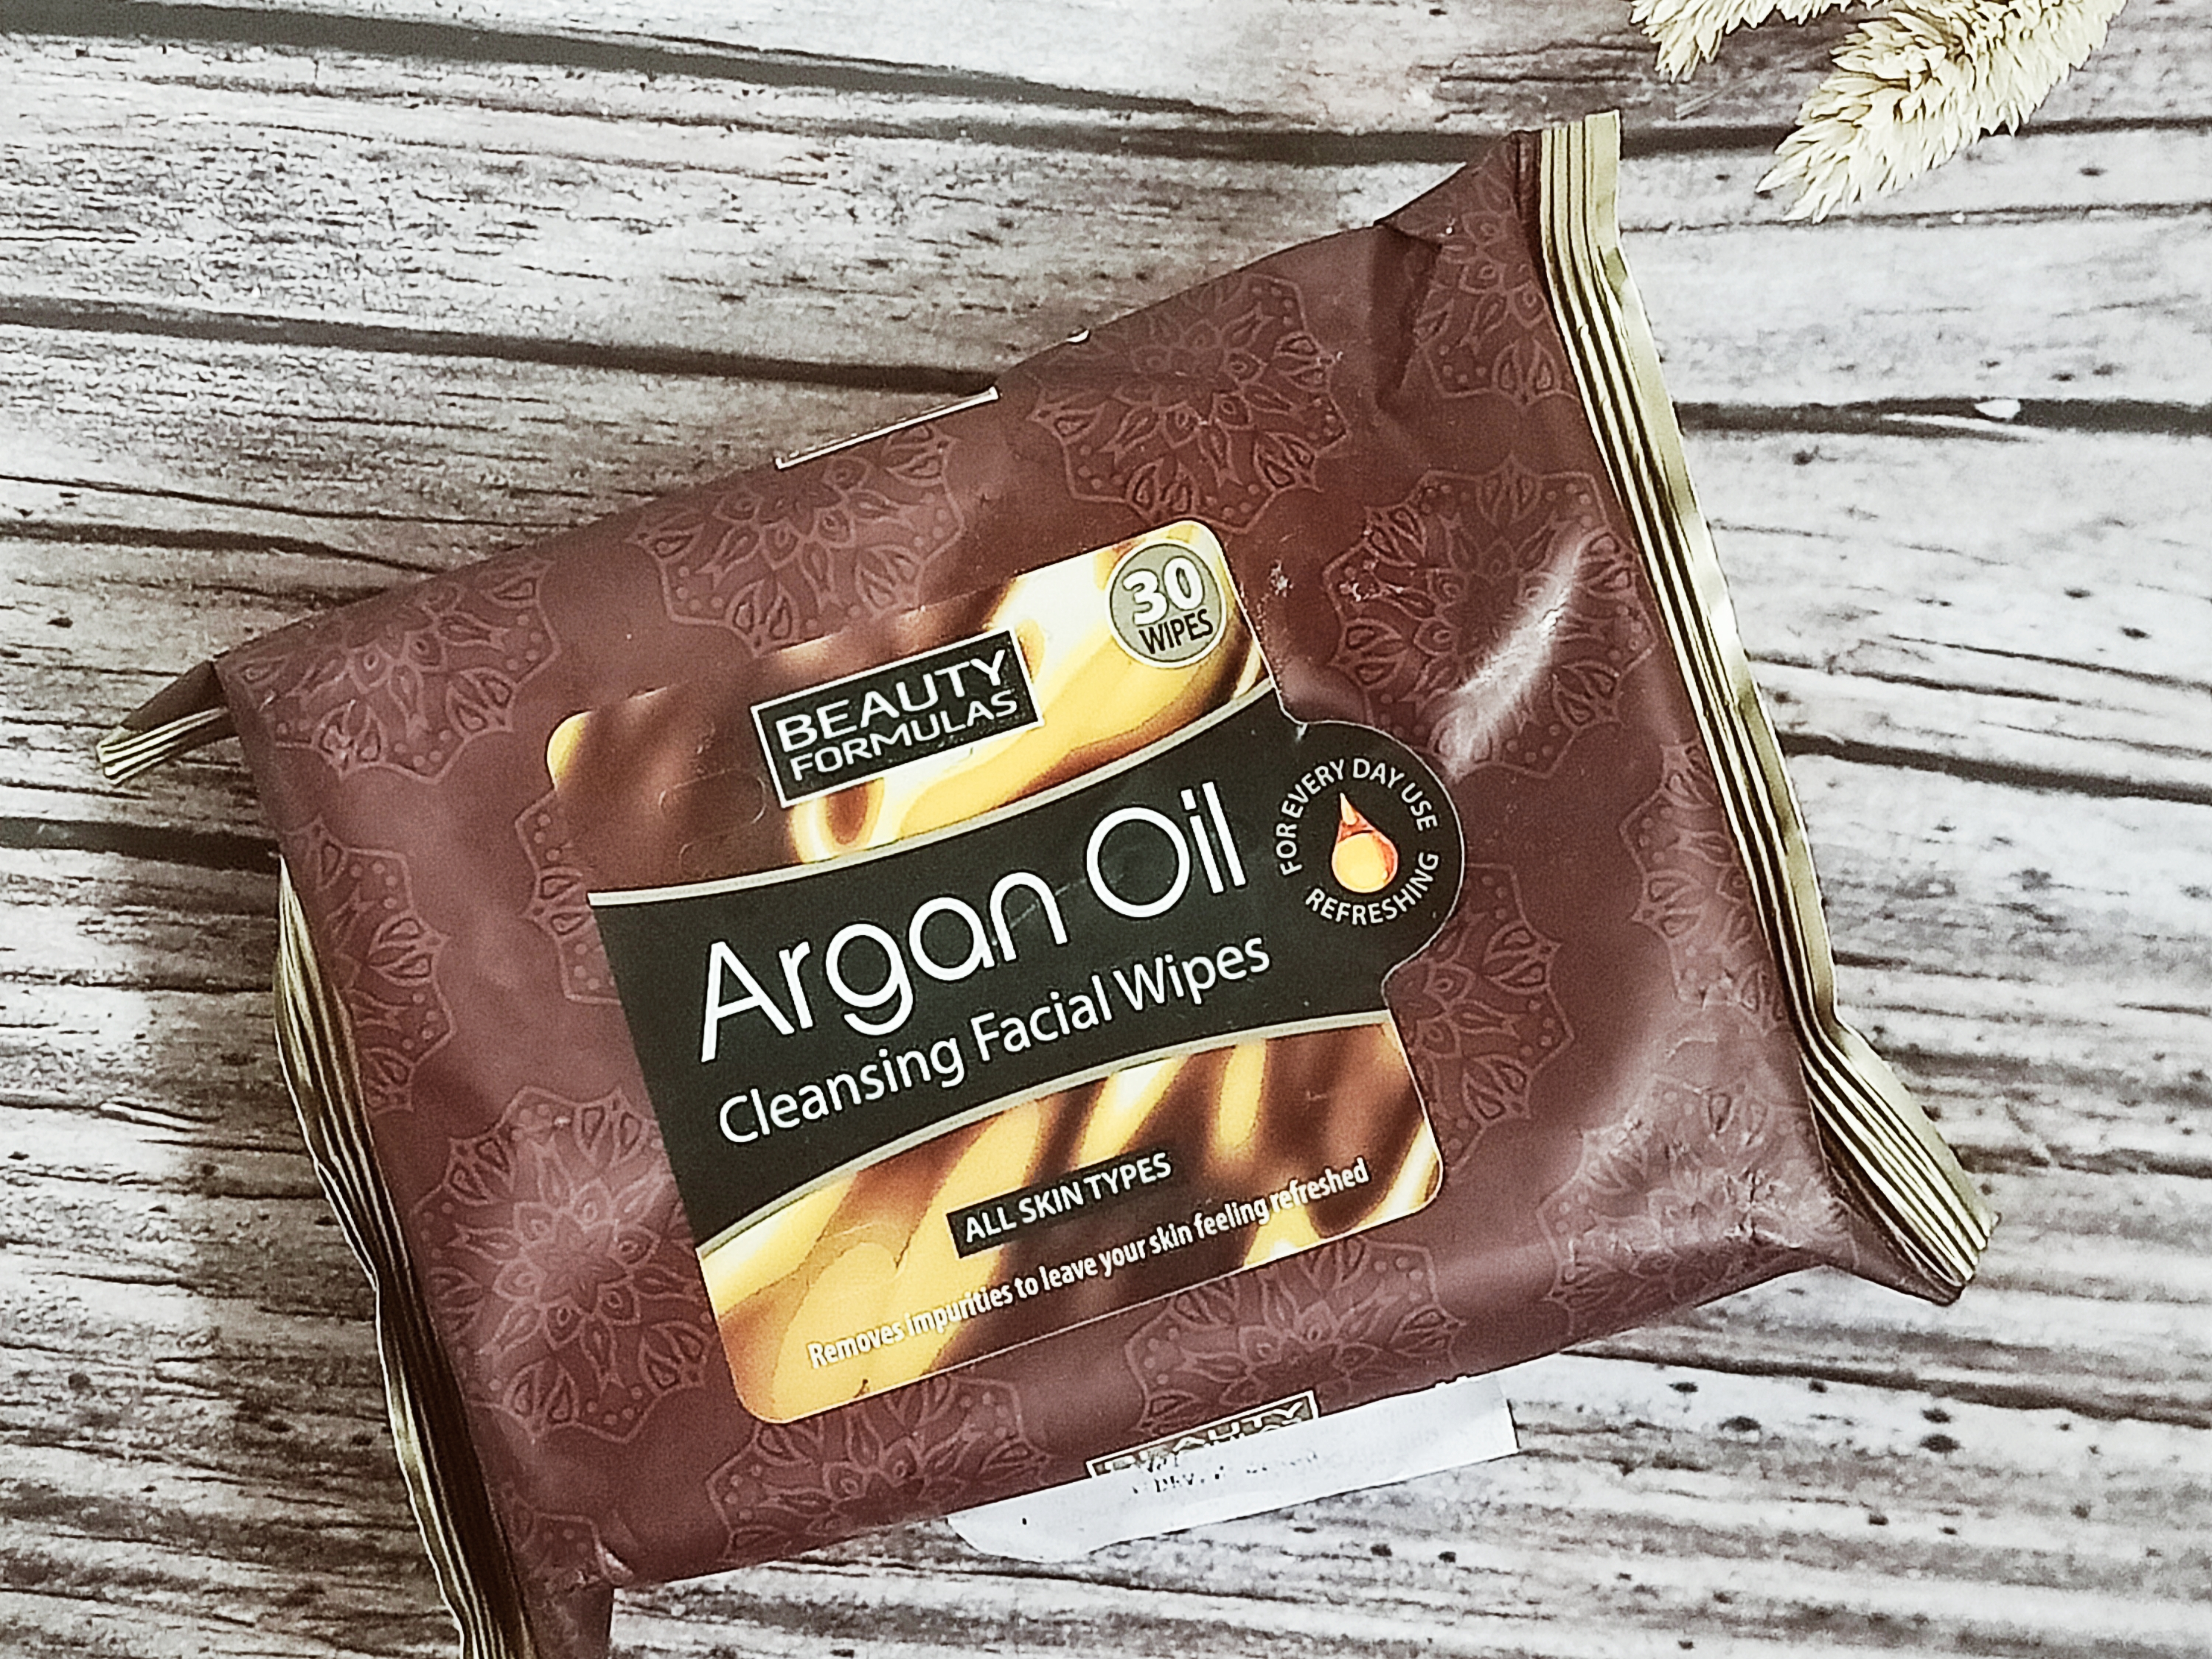 REVIEW | Beauty Formulas Argan Oil Facial Cleaning Wipes